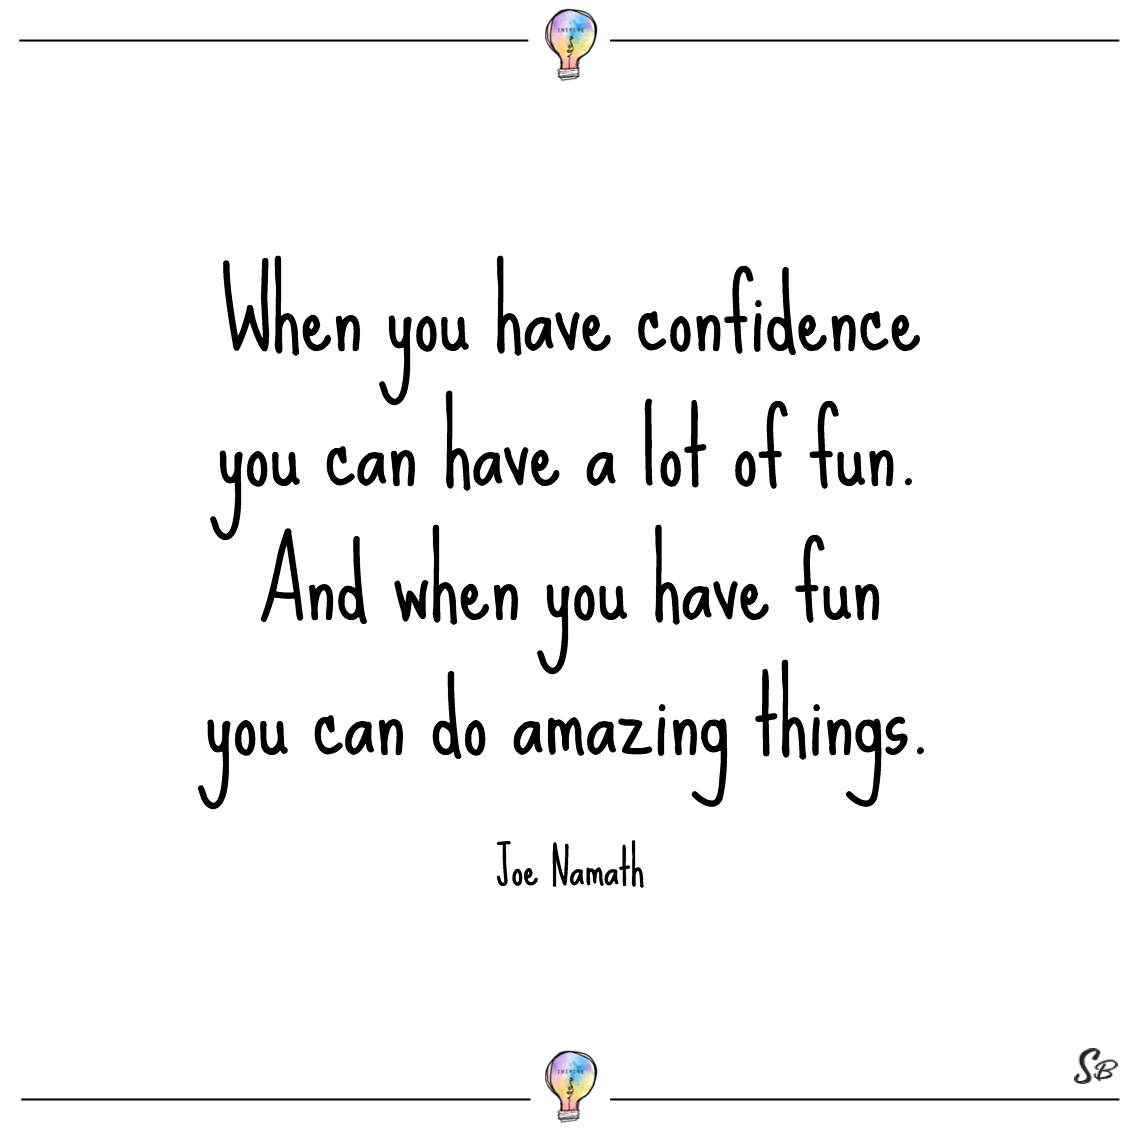 When you have confidence you can have a lot of fun. and when you have fun you can do amazing things. joe namath